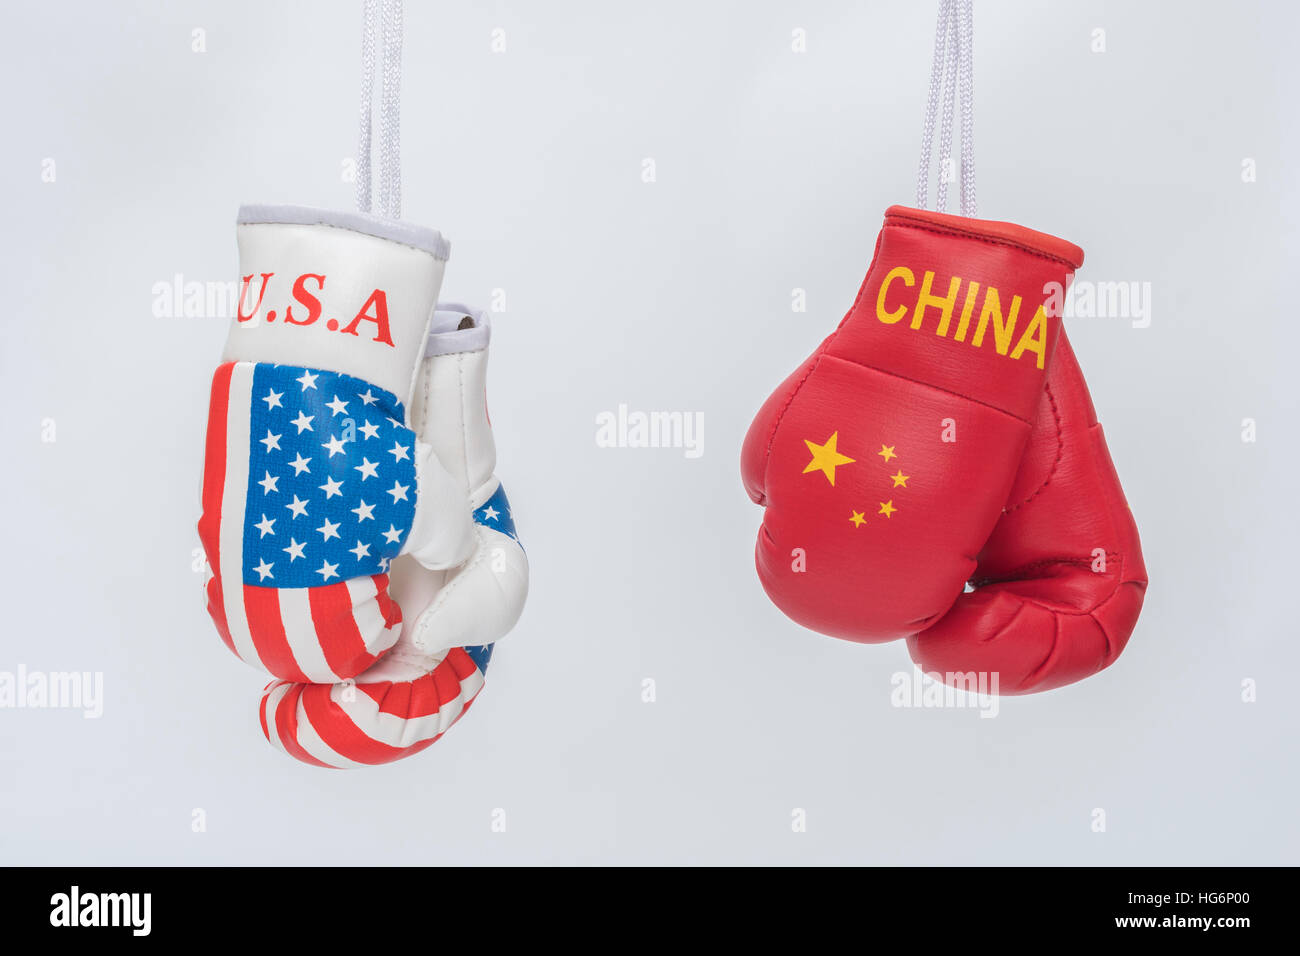 Mini US Stars   Stripes boxing gloves - metaphor for concept US-Chinese  tensions 667c0caaec